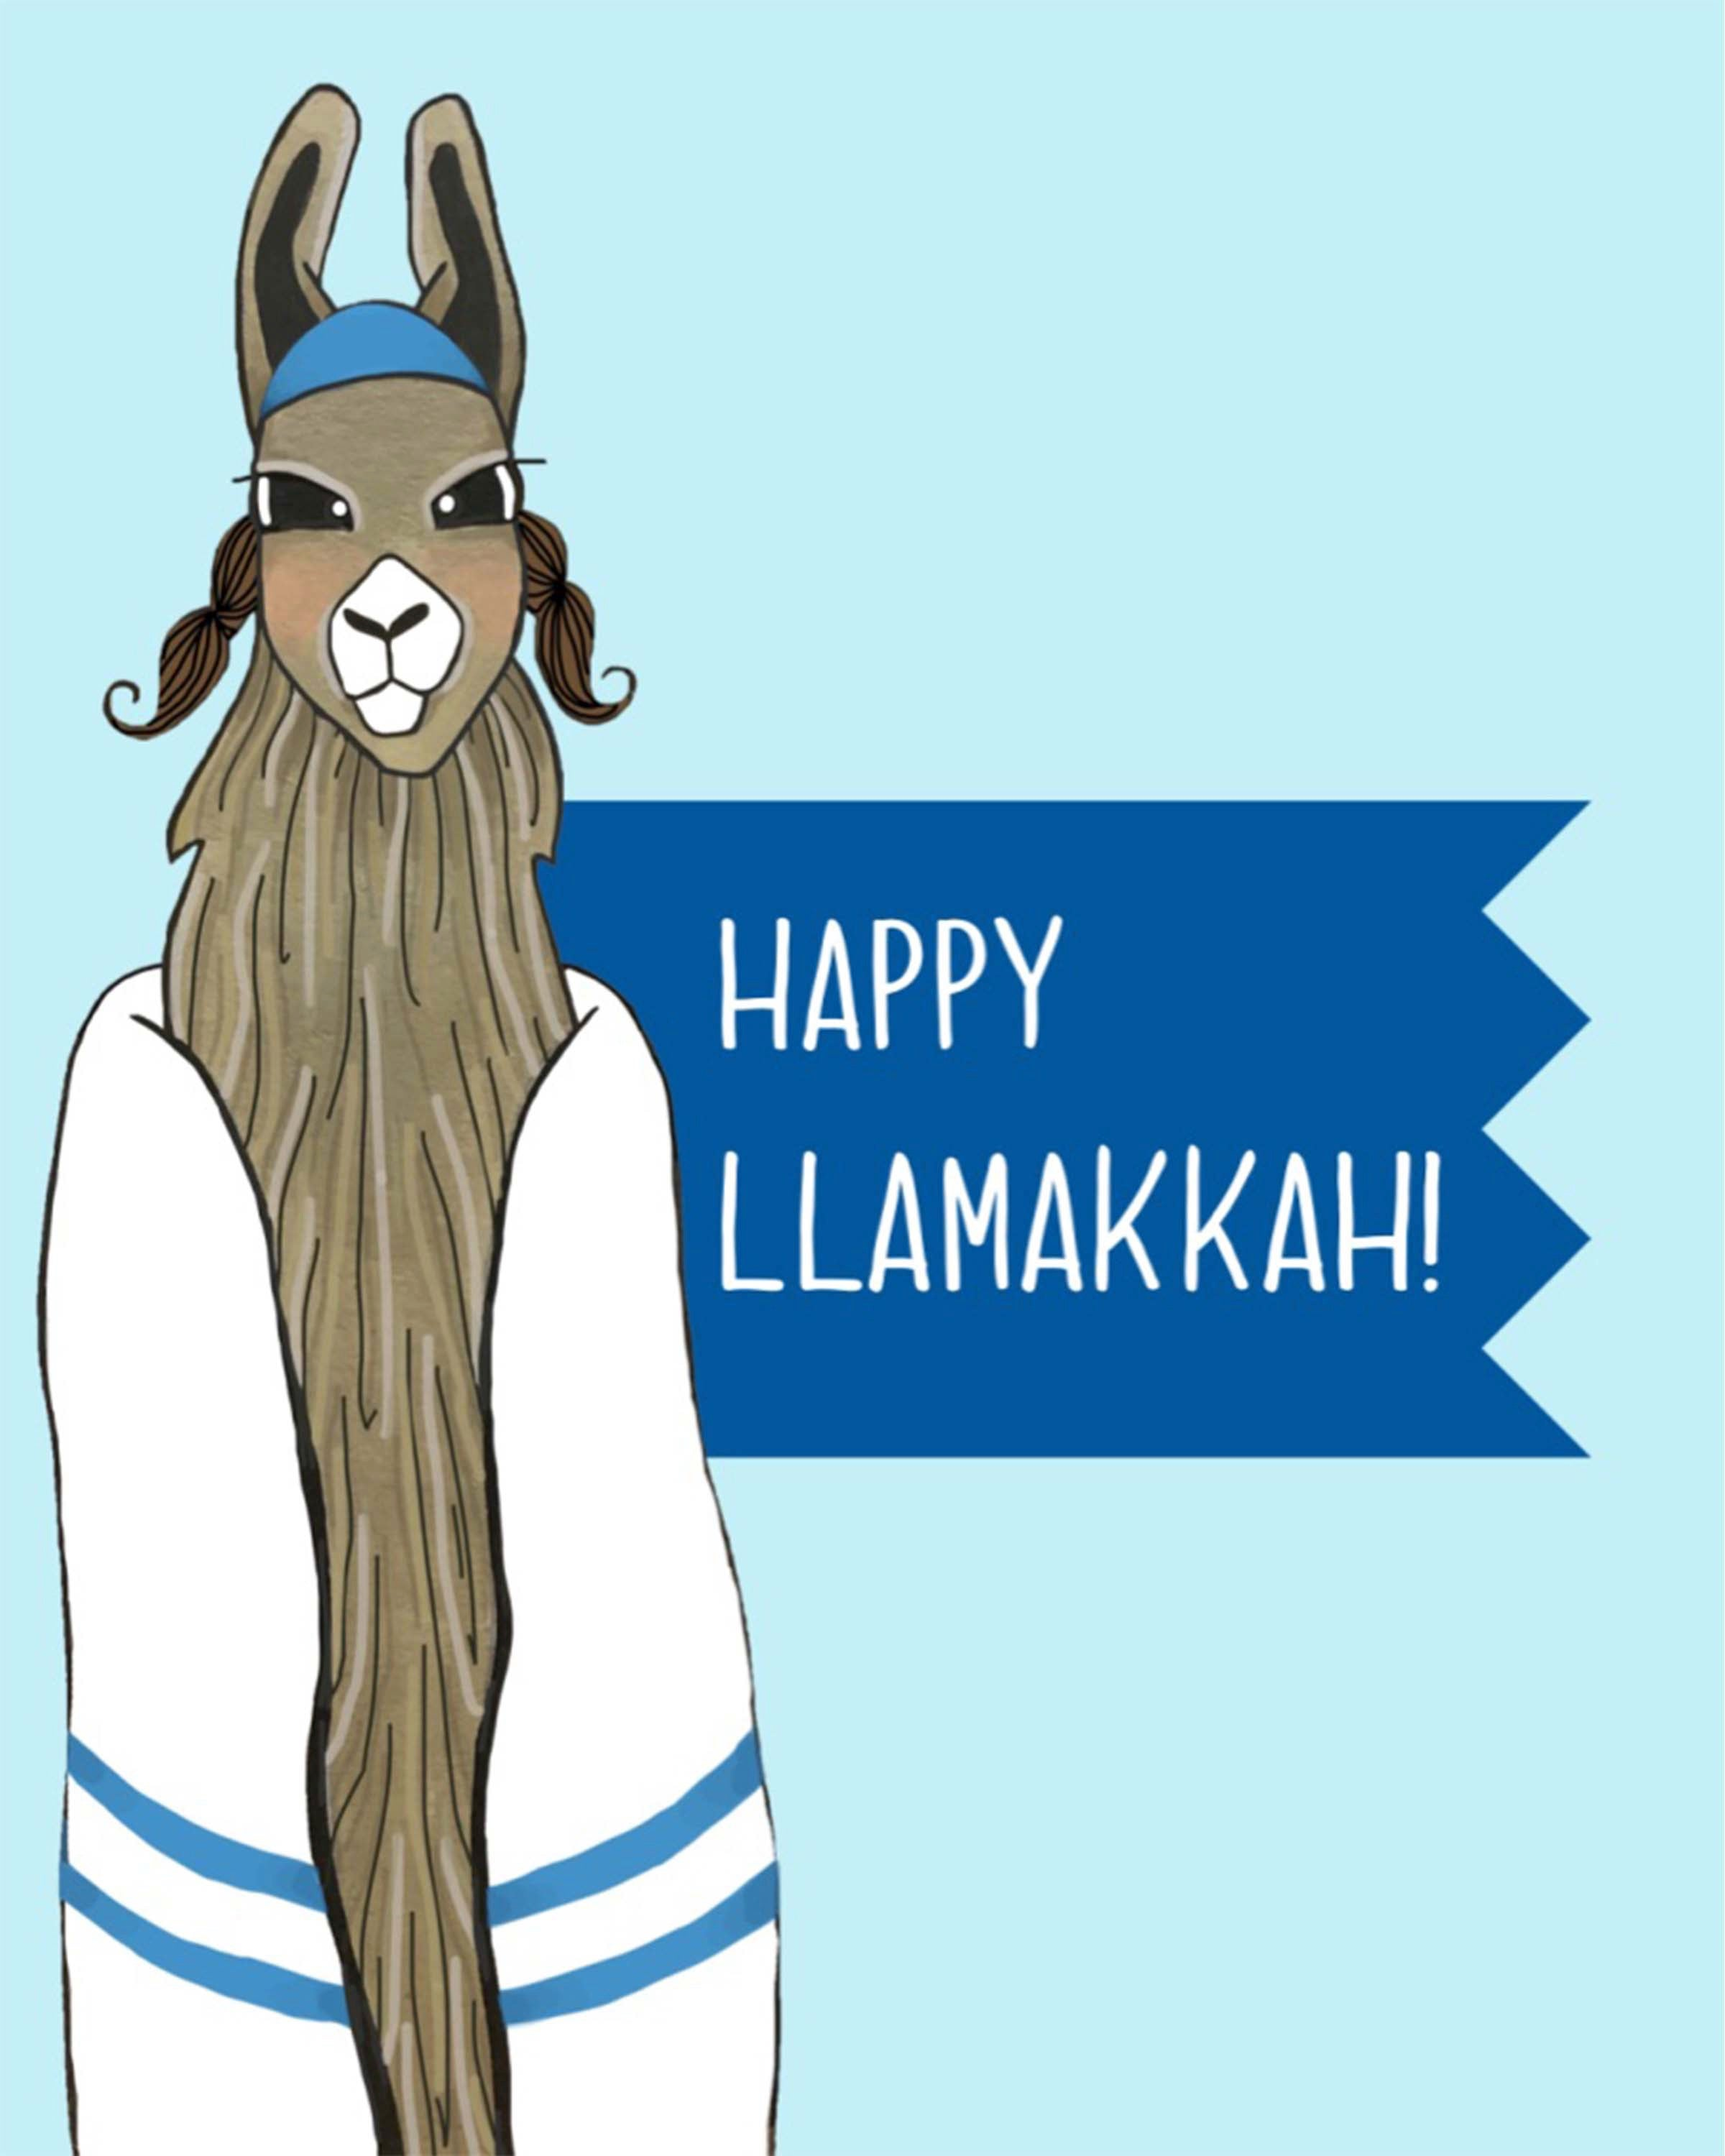 Holiday Print - Happy LLamakkah!